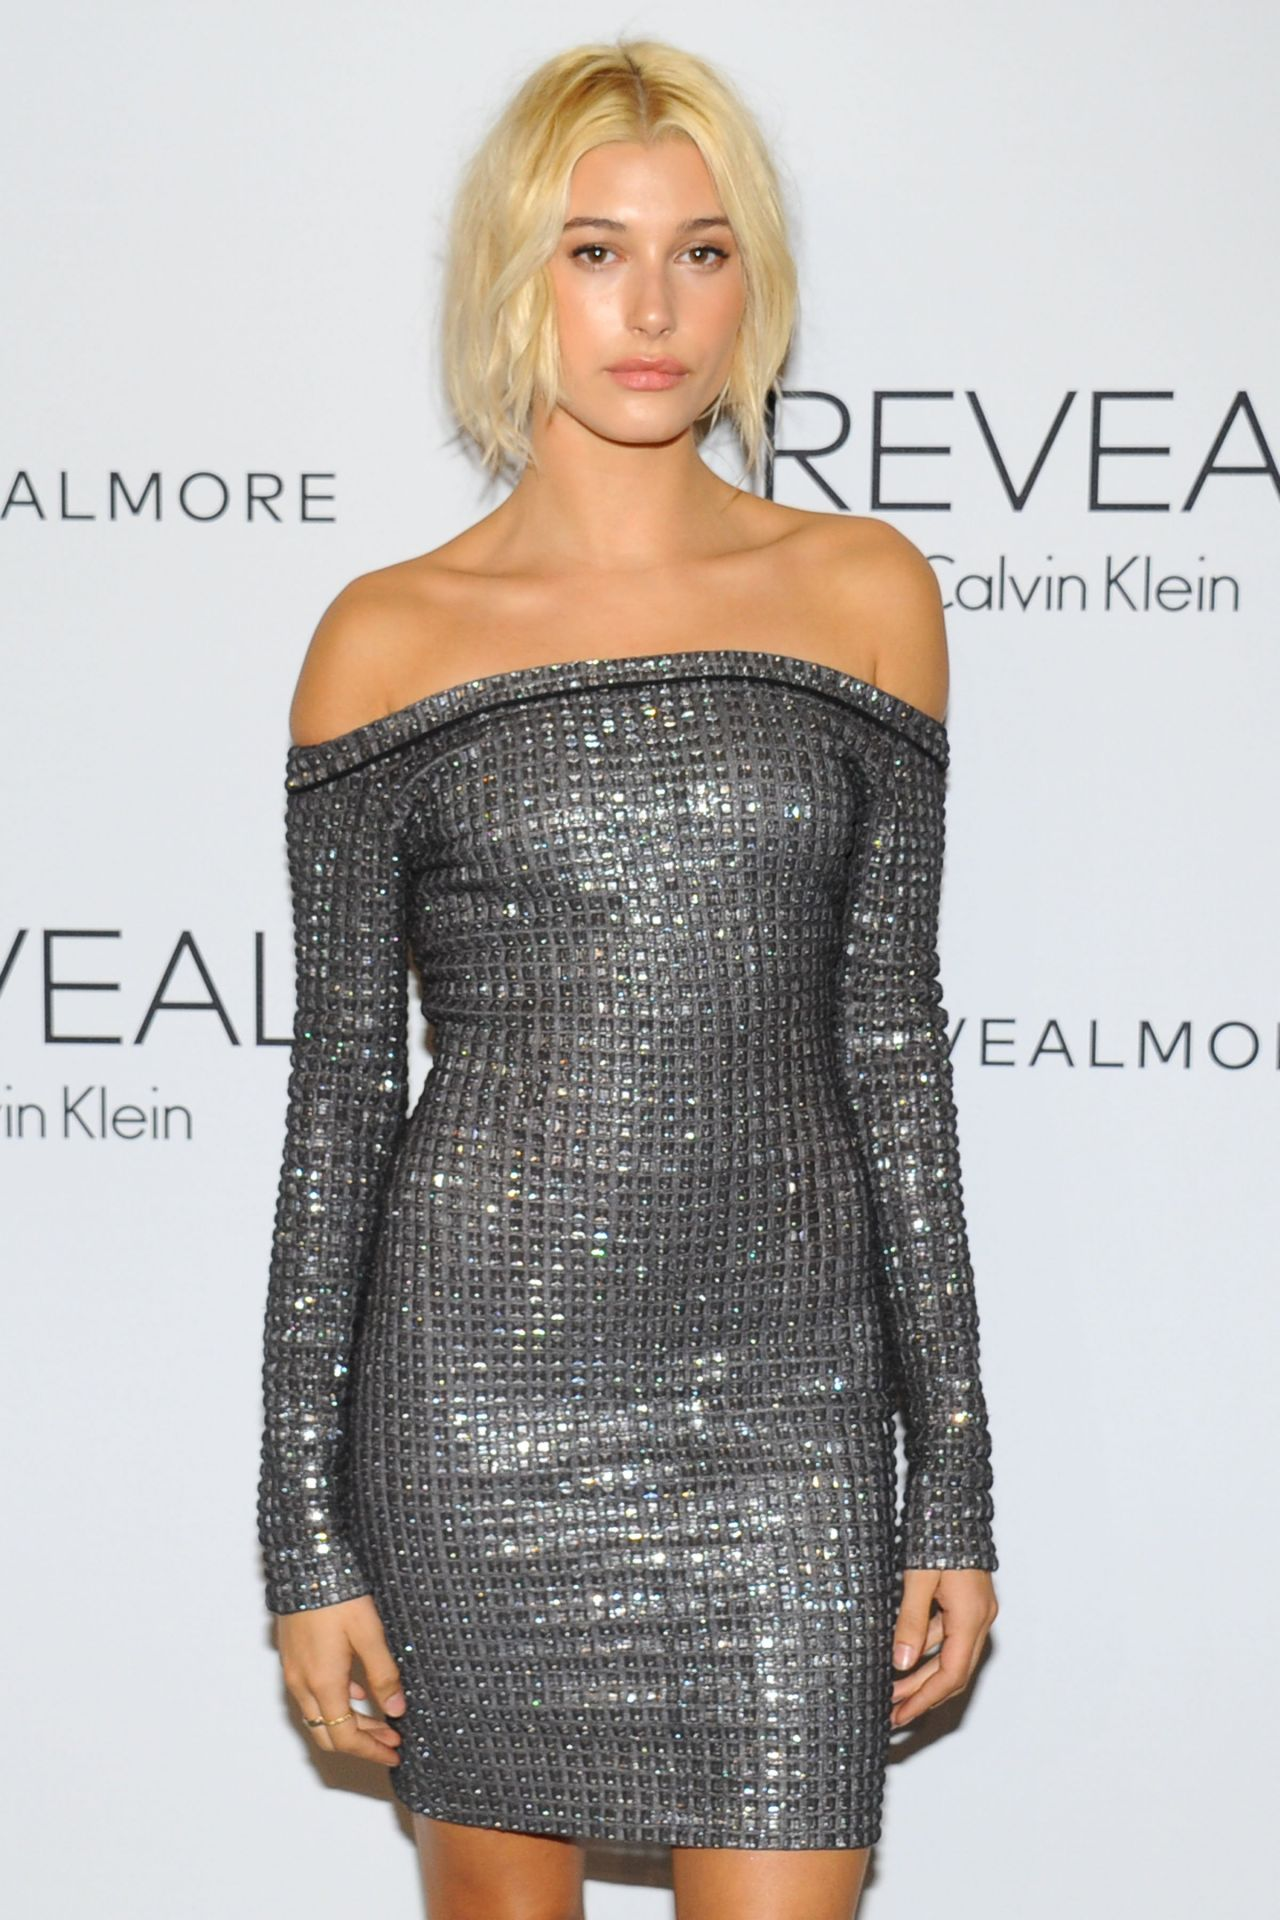 Hailey Baldwin - REVEAL Calvin Klein Fragrance Launch in New York City - September 2014